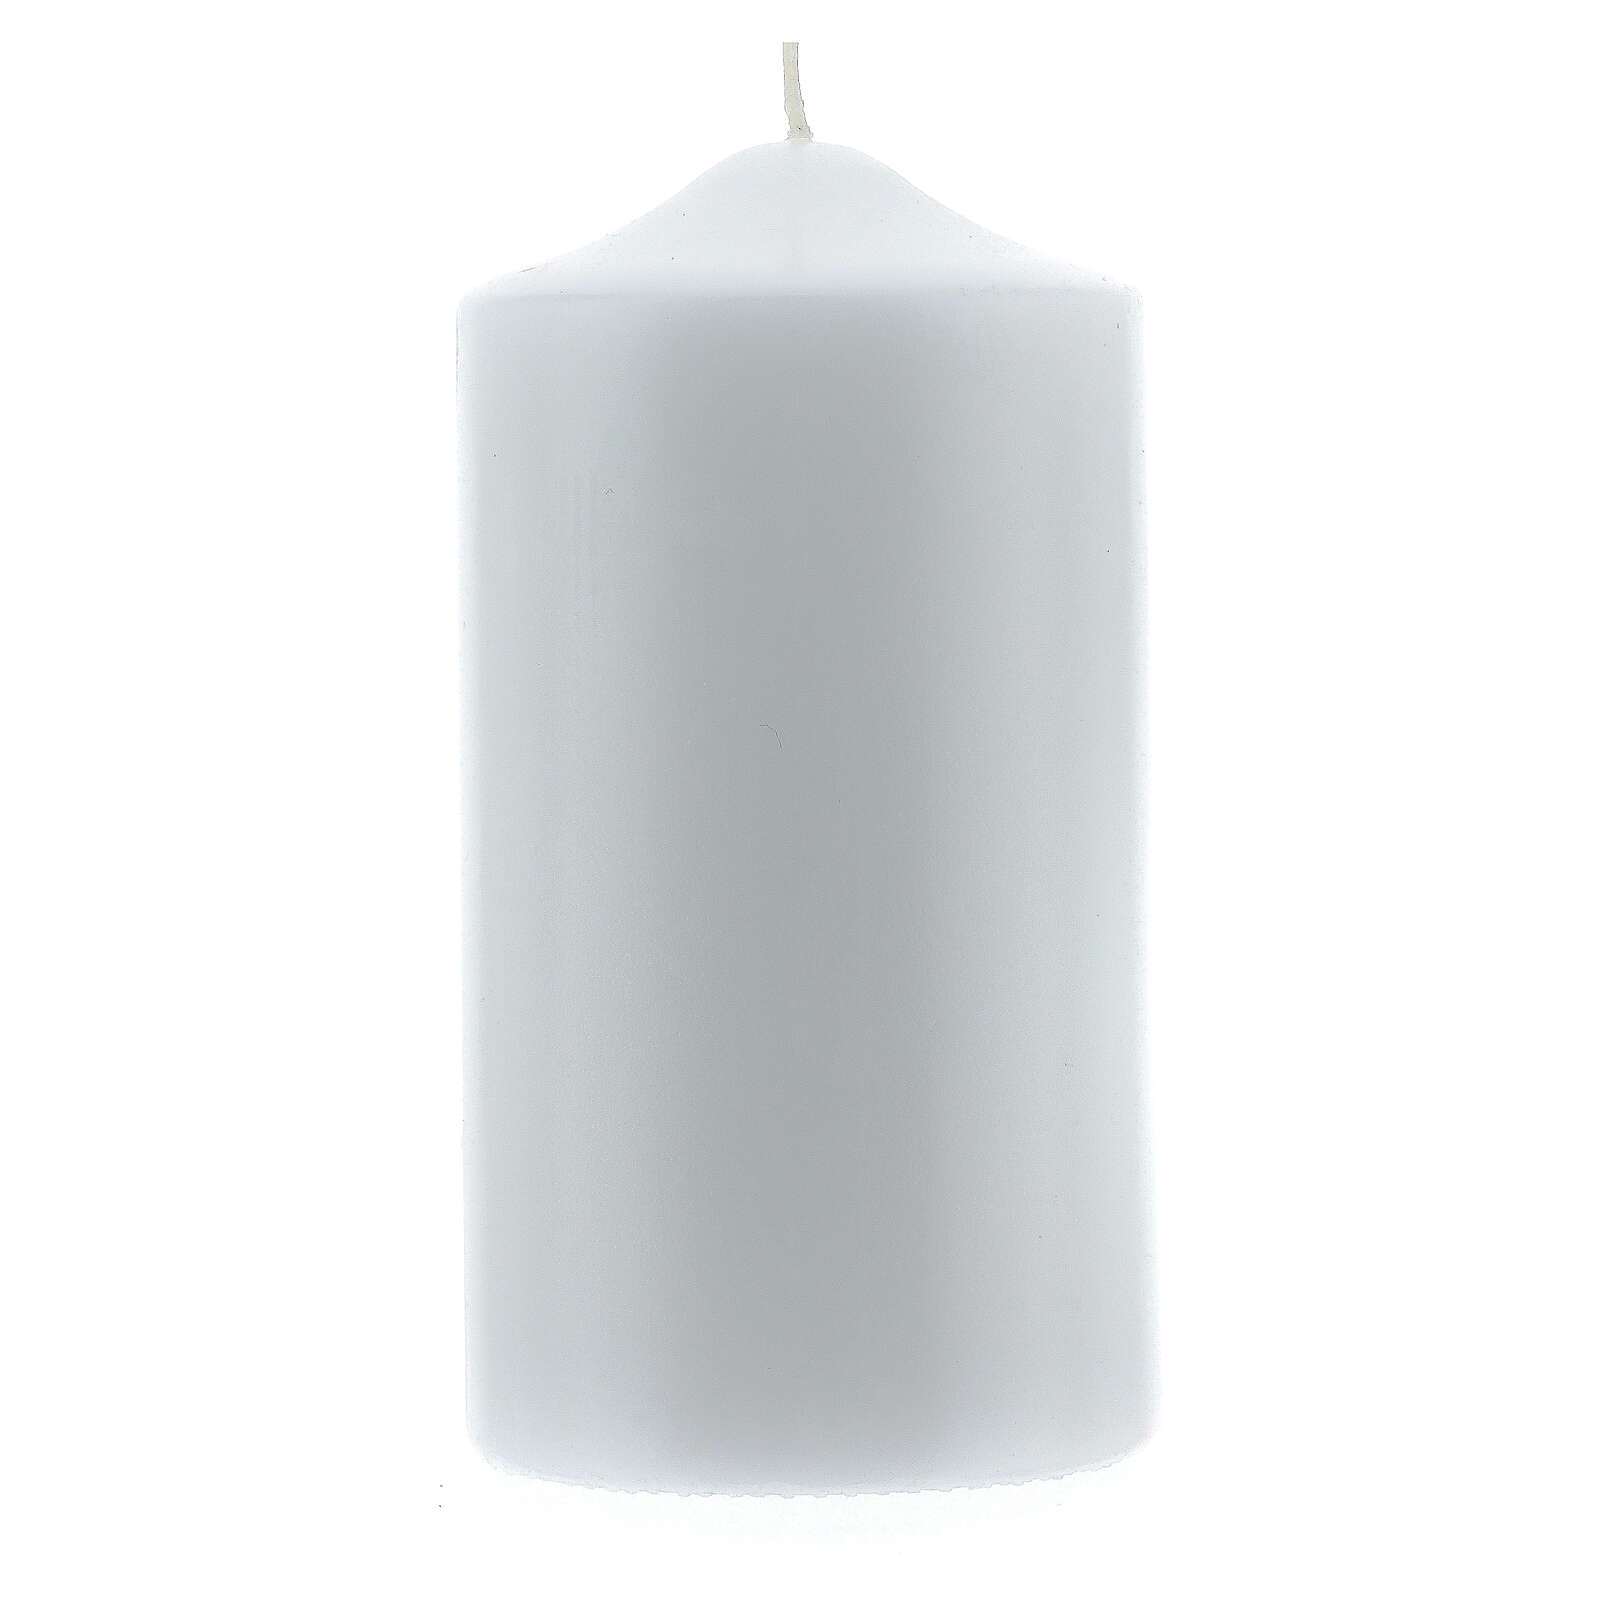 Altar large candle 80 x 150 mm 3